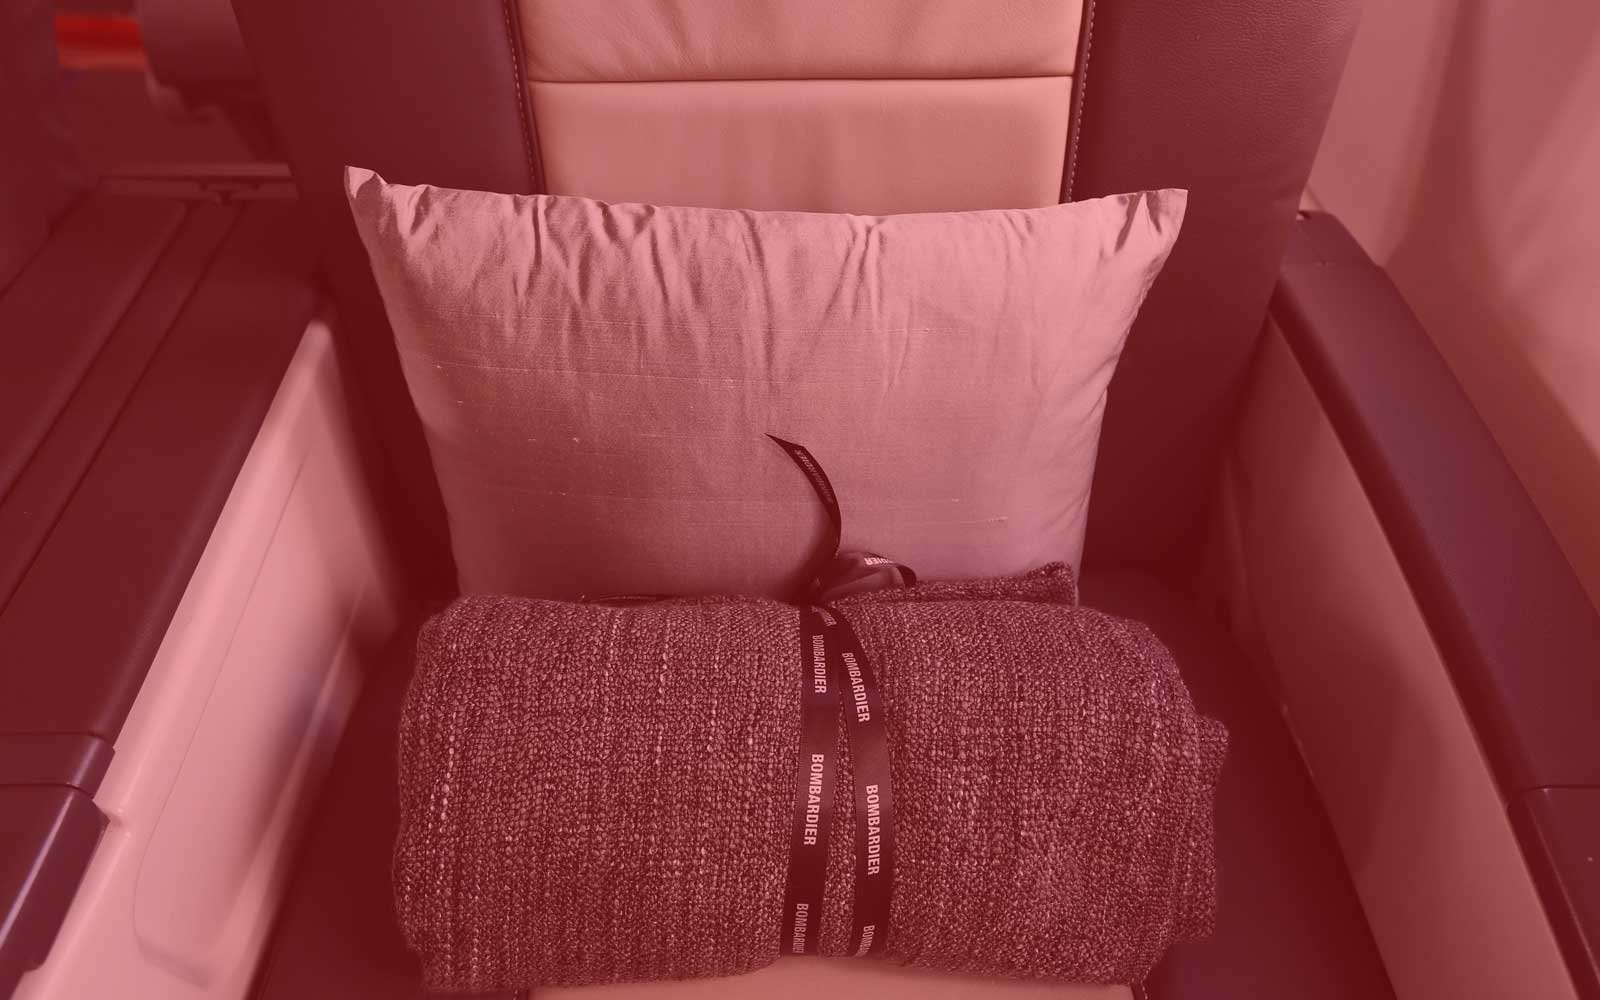 Airplane Blanket in Seat